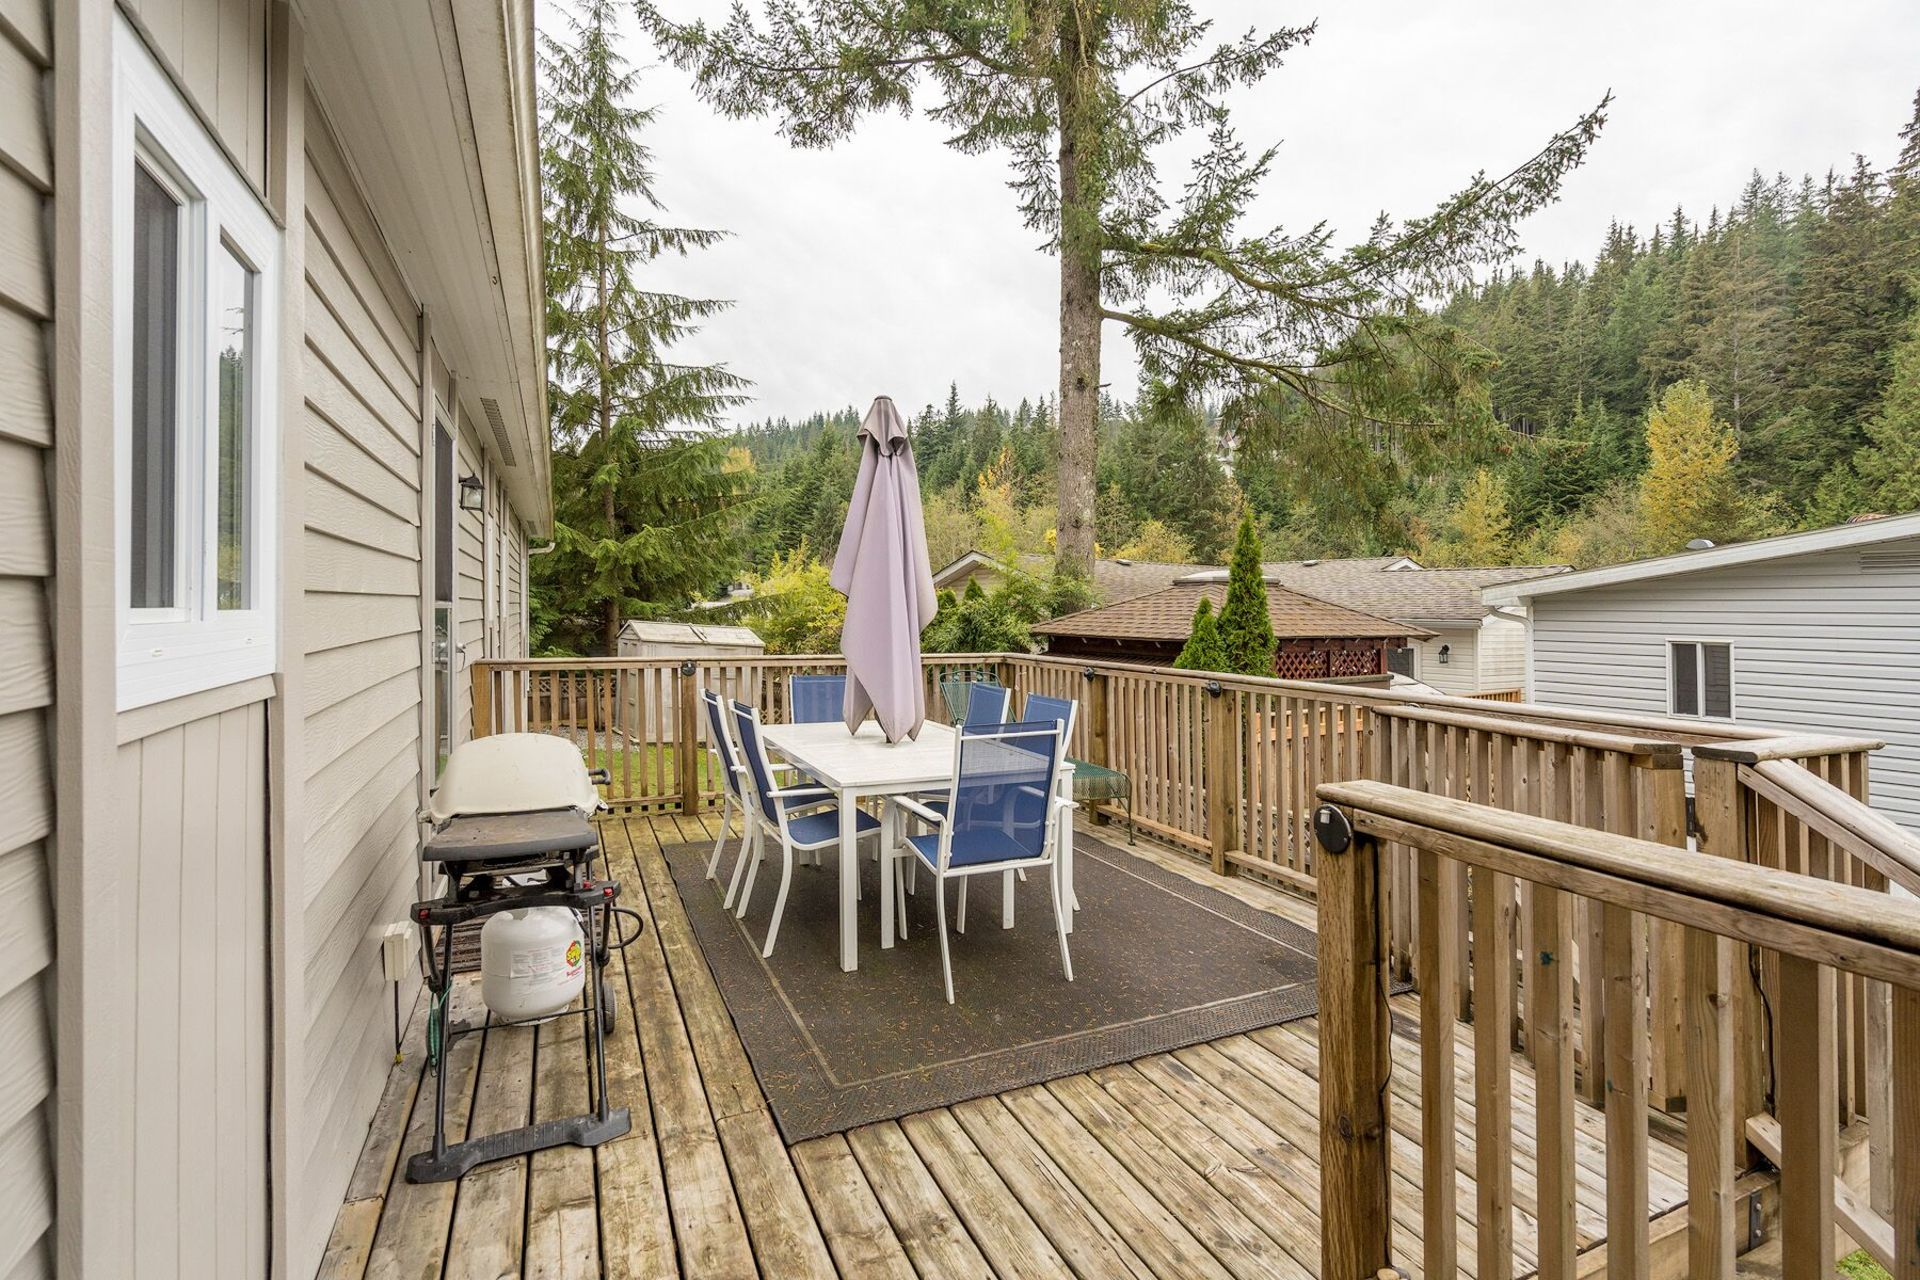 2fnzkzc0 at 61 - 3295 Sunnyside Road, Anmore, Port Moody